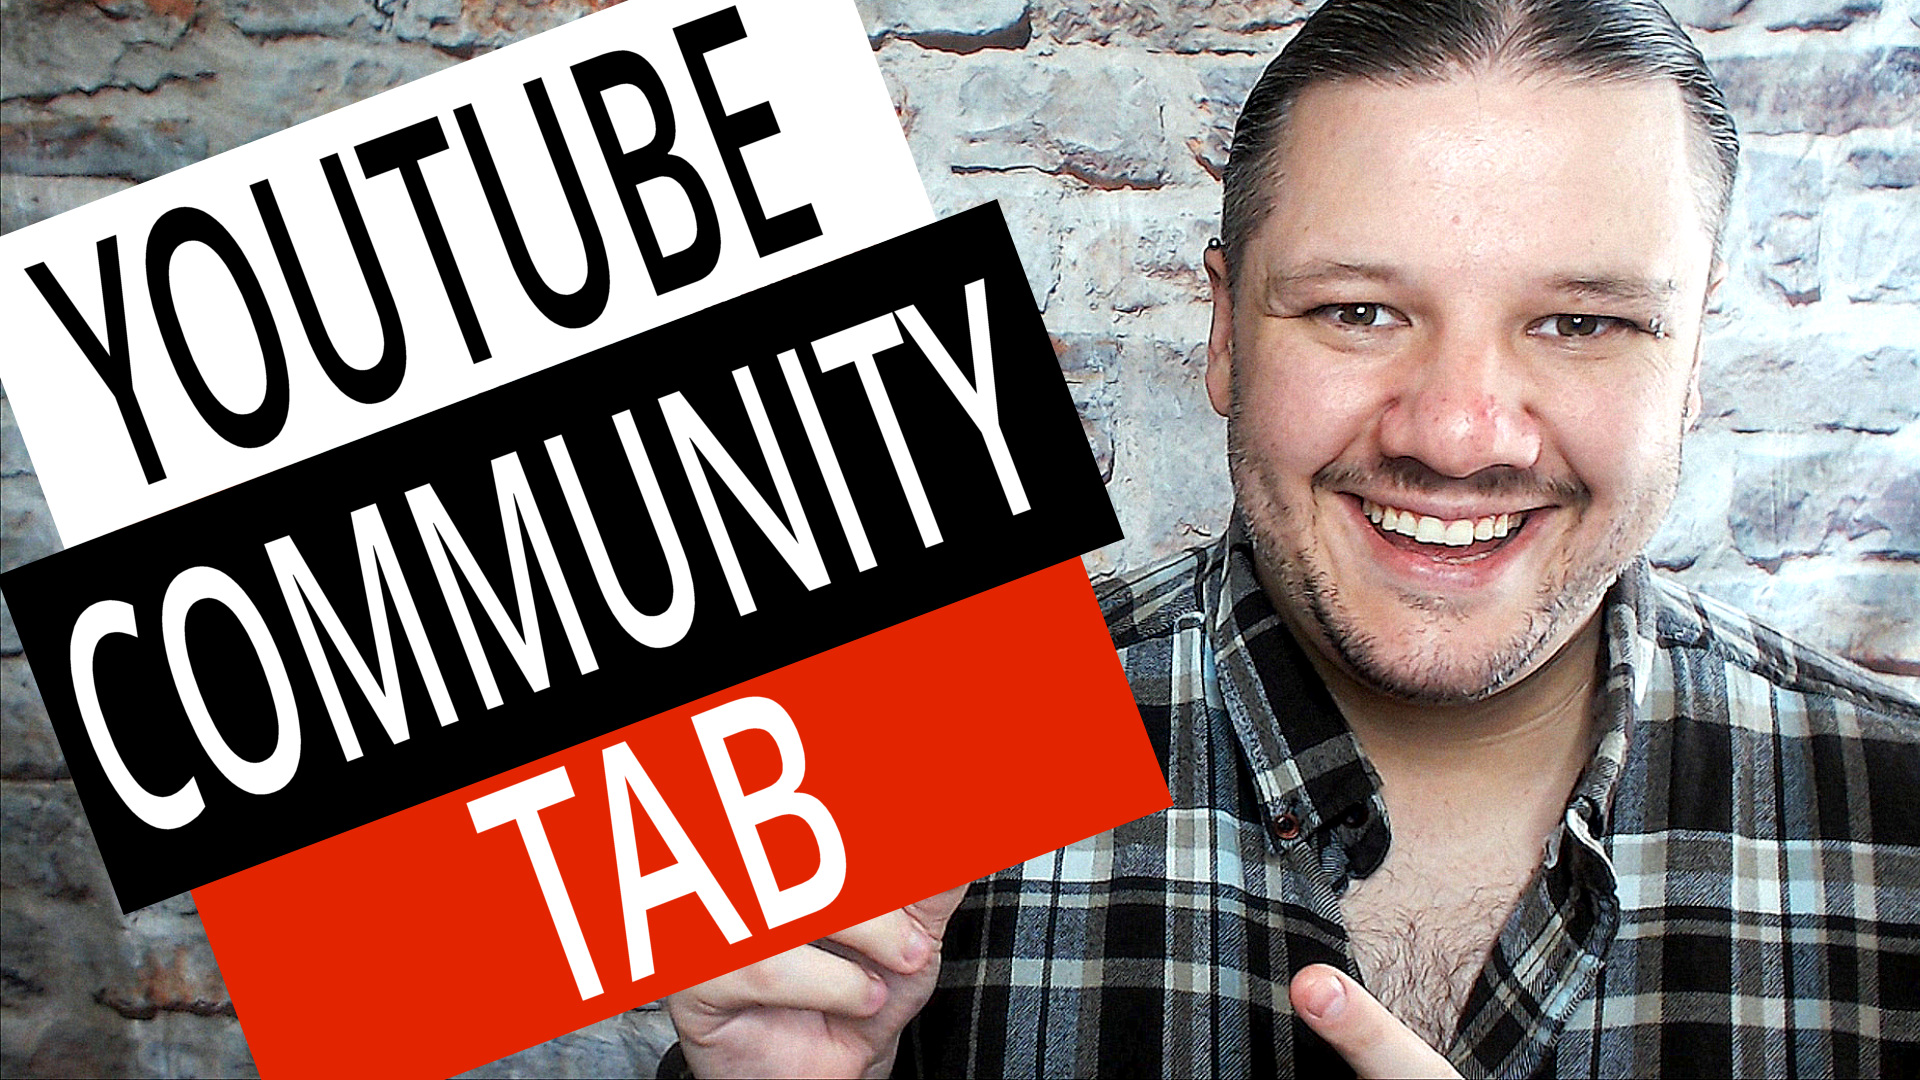 alan spicer,How To Use The YouTube Community Tab 2019,How To Use The YouTube Community Tab,how to use youtube community tab,youtube community tab tutorial,youtube community tab 2019,youtube community tab not showing,community tab,community tab youtube,community tab 2019,community tab tutorial,how to use community tab,how to get community tab,youtube community tab,youtube community,how to get community tab on youtube,how to use the community tab on youtube